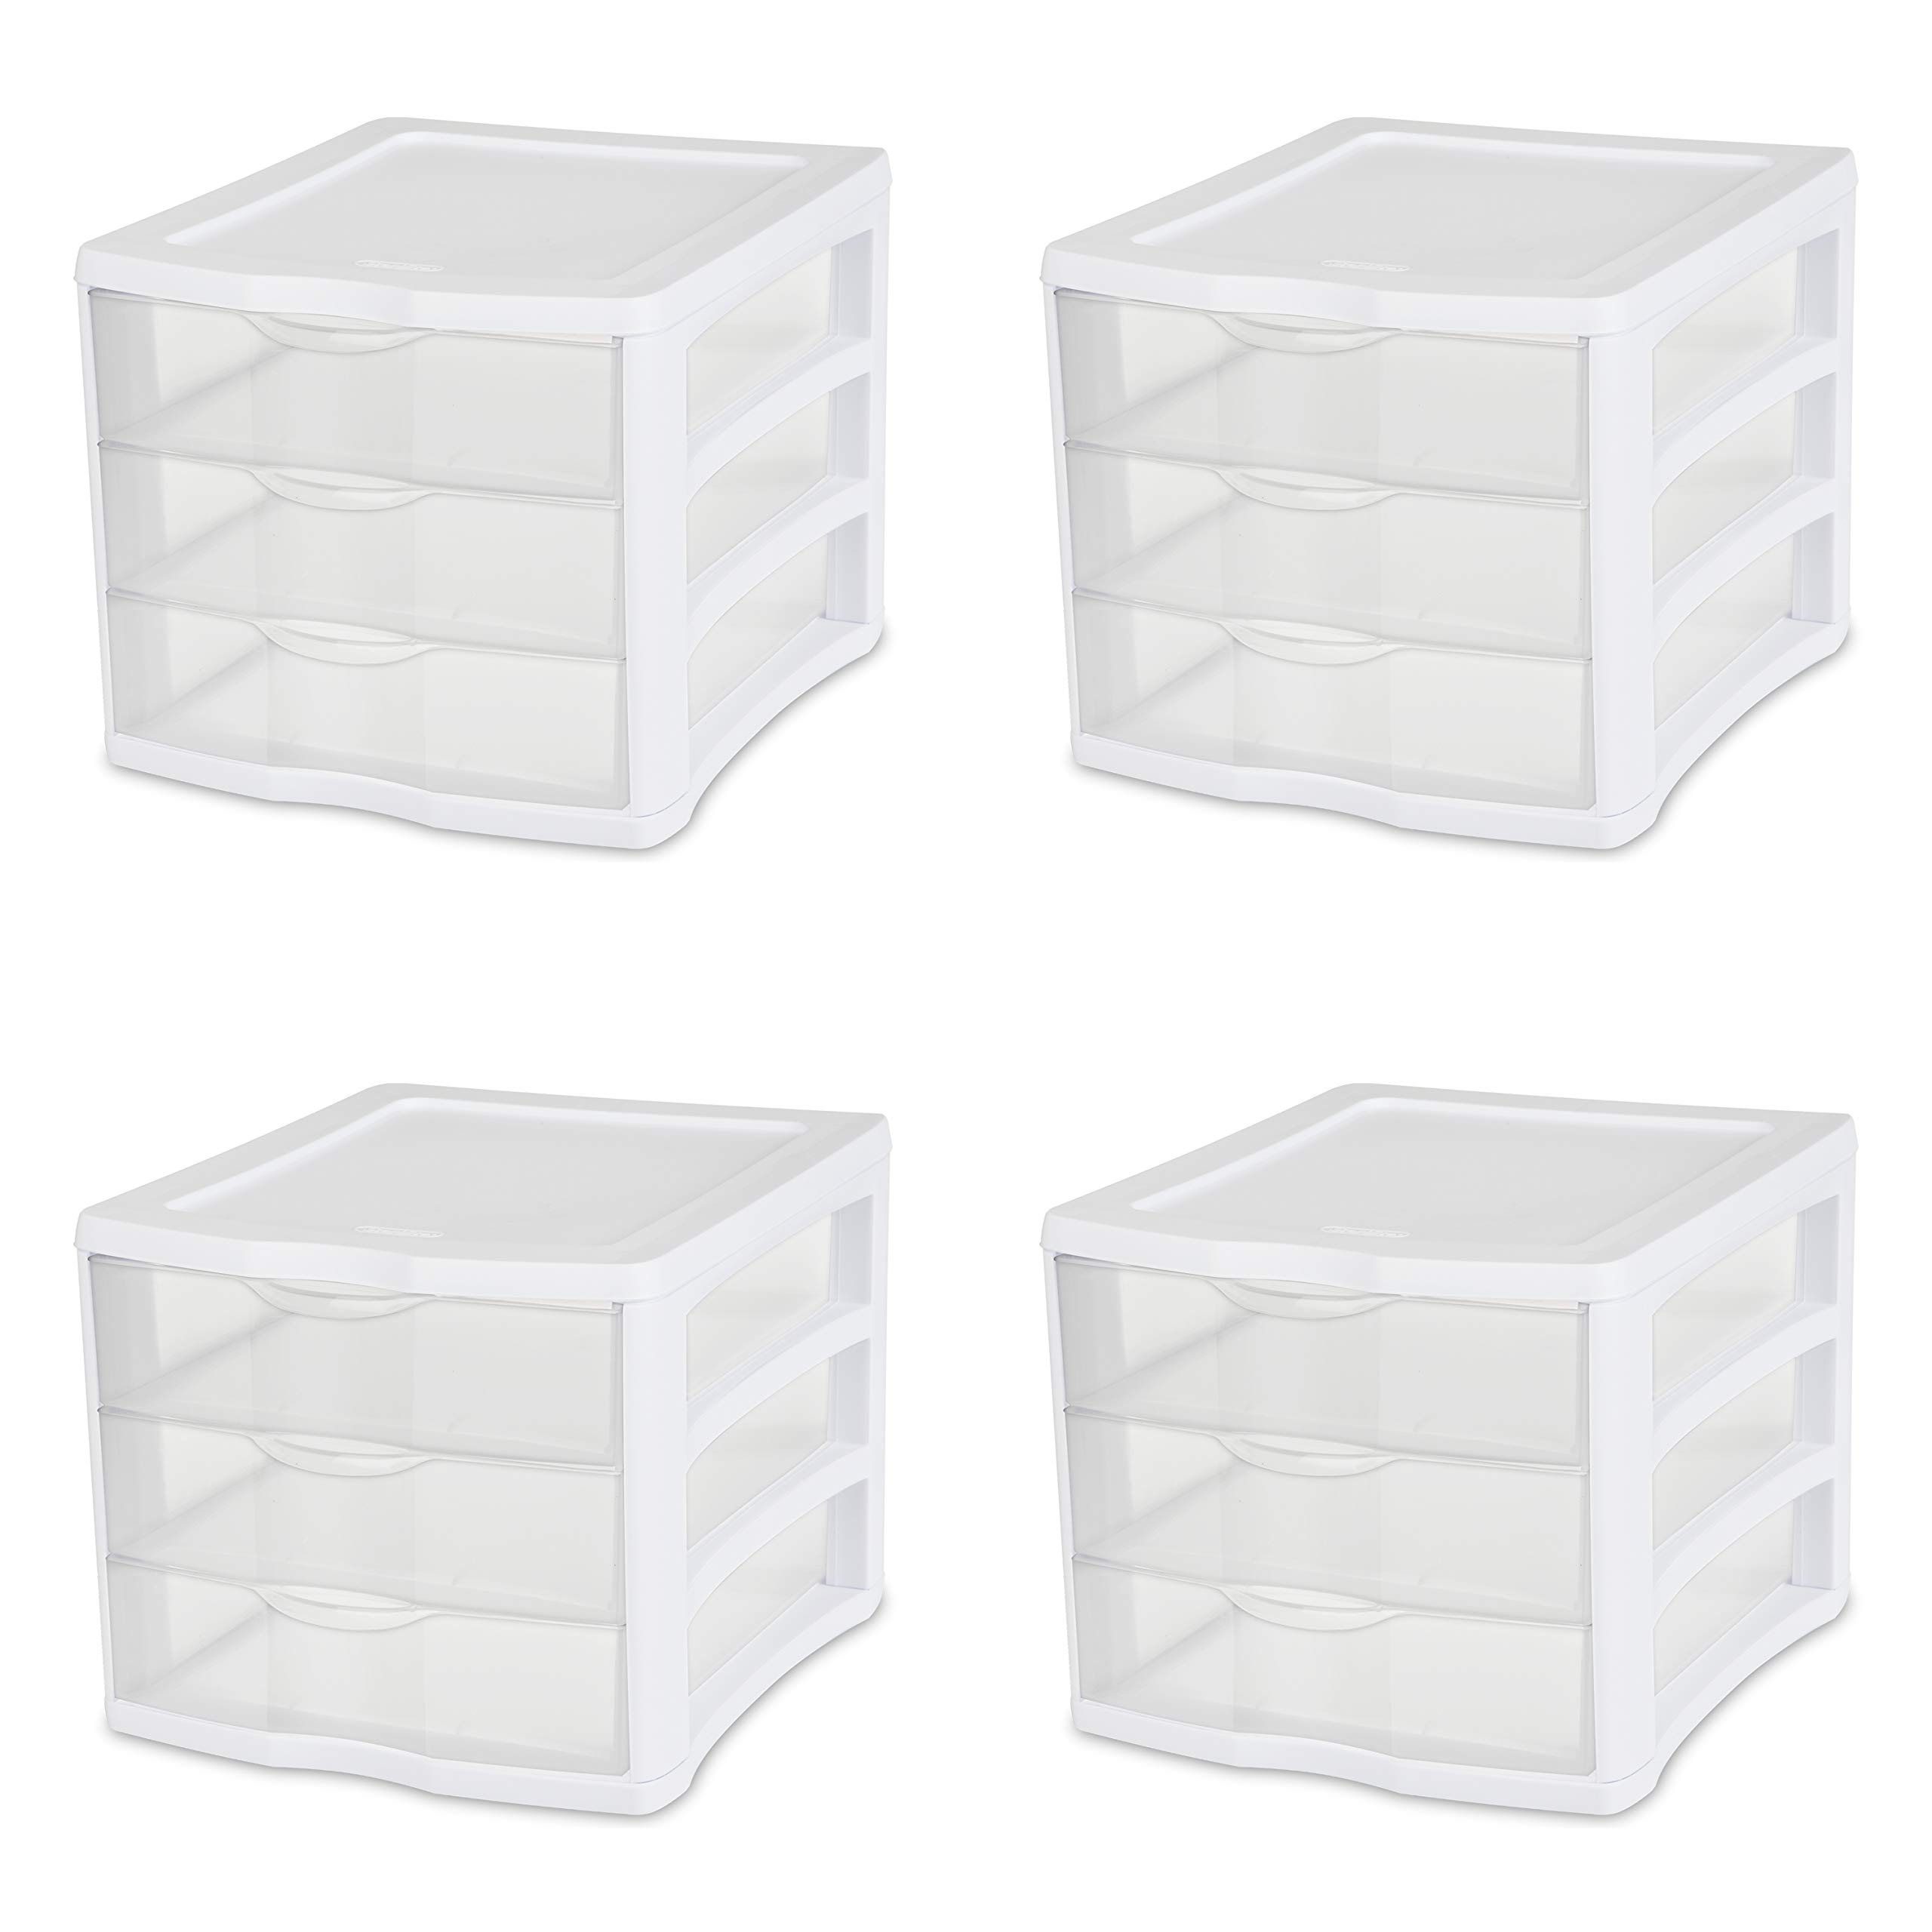 Sterilite 17918004 Drawer Drawers 4 Pack